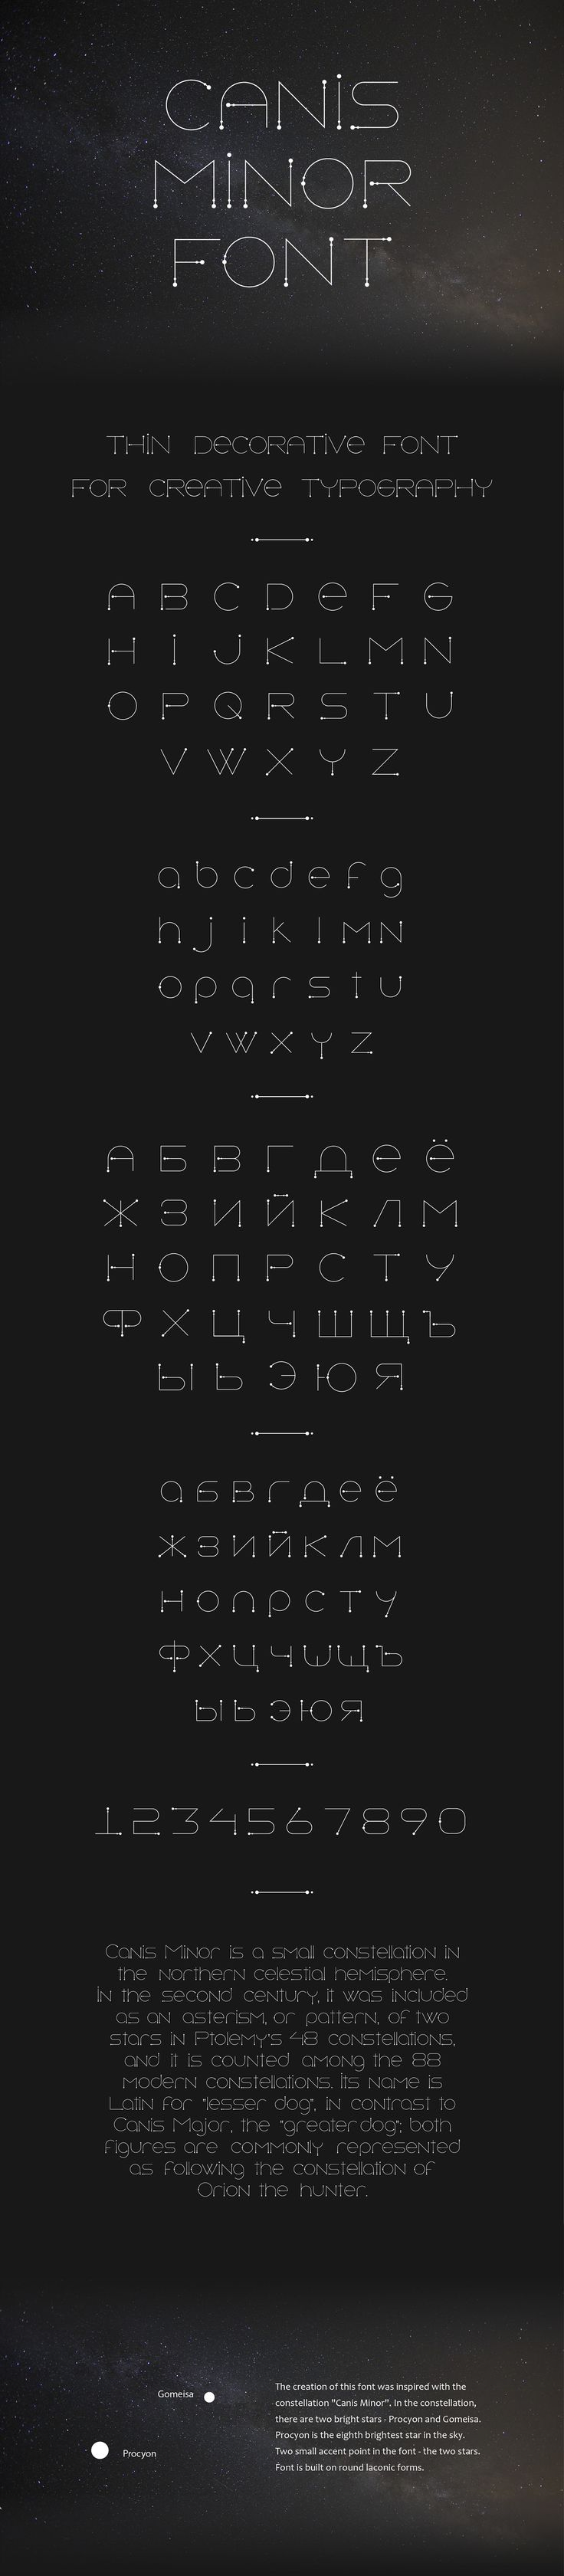 "The creation of this font was inspired with the constellation ""Canis Minor"". In…"